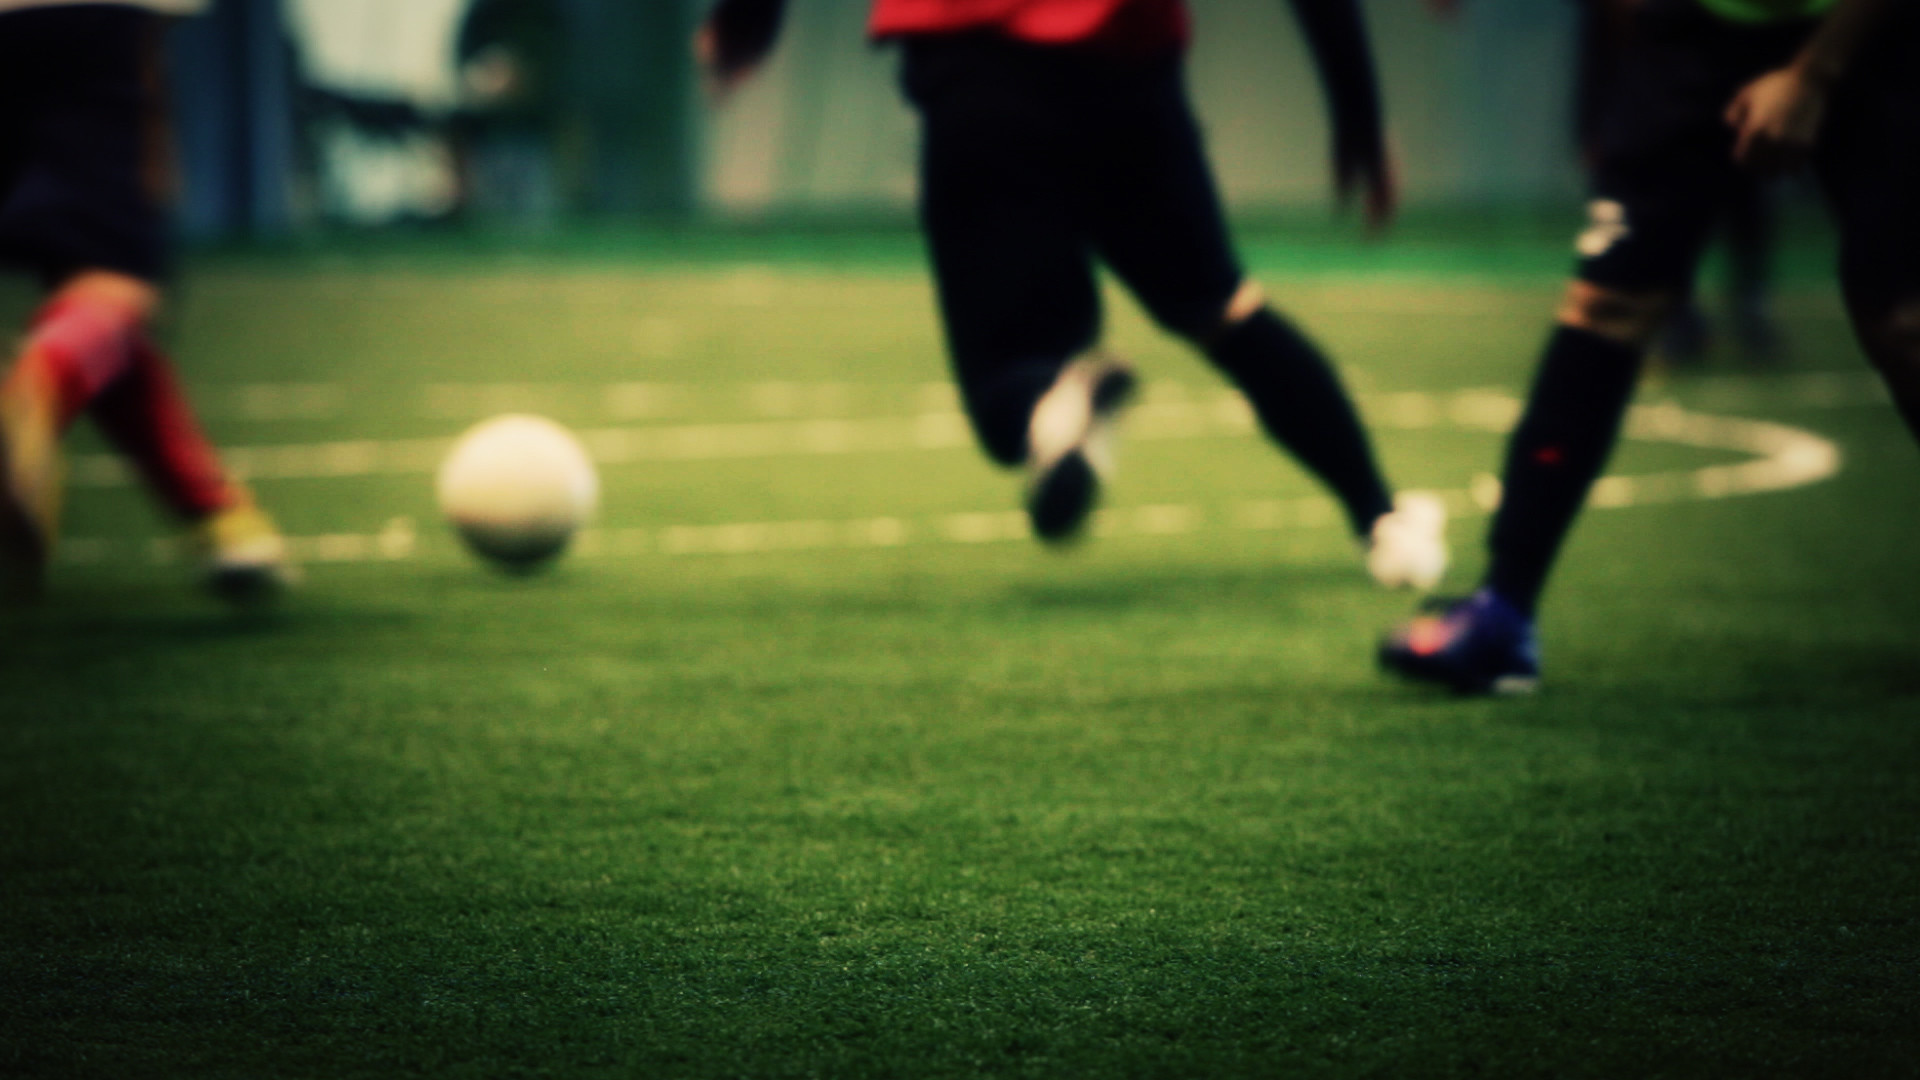 22 Hd Sports Wallpapers Backgrounds Images: Futsal Wallpaper Background HD ·① WallpaperTag